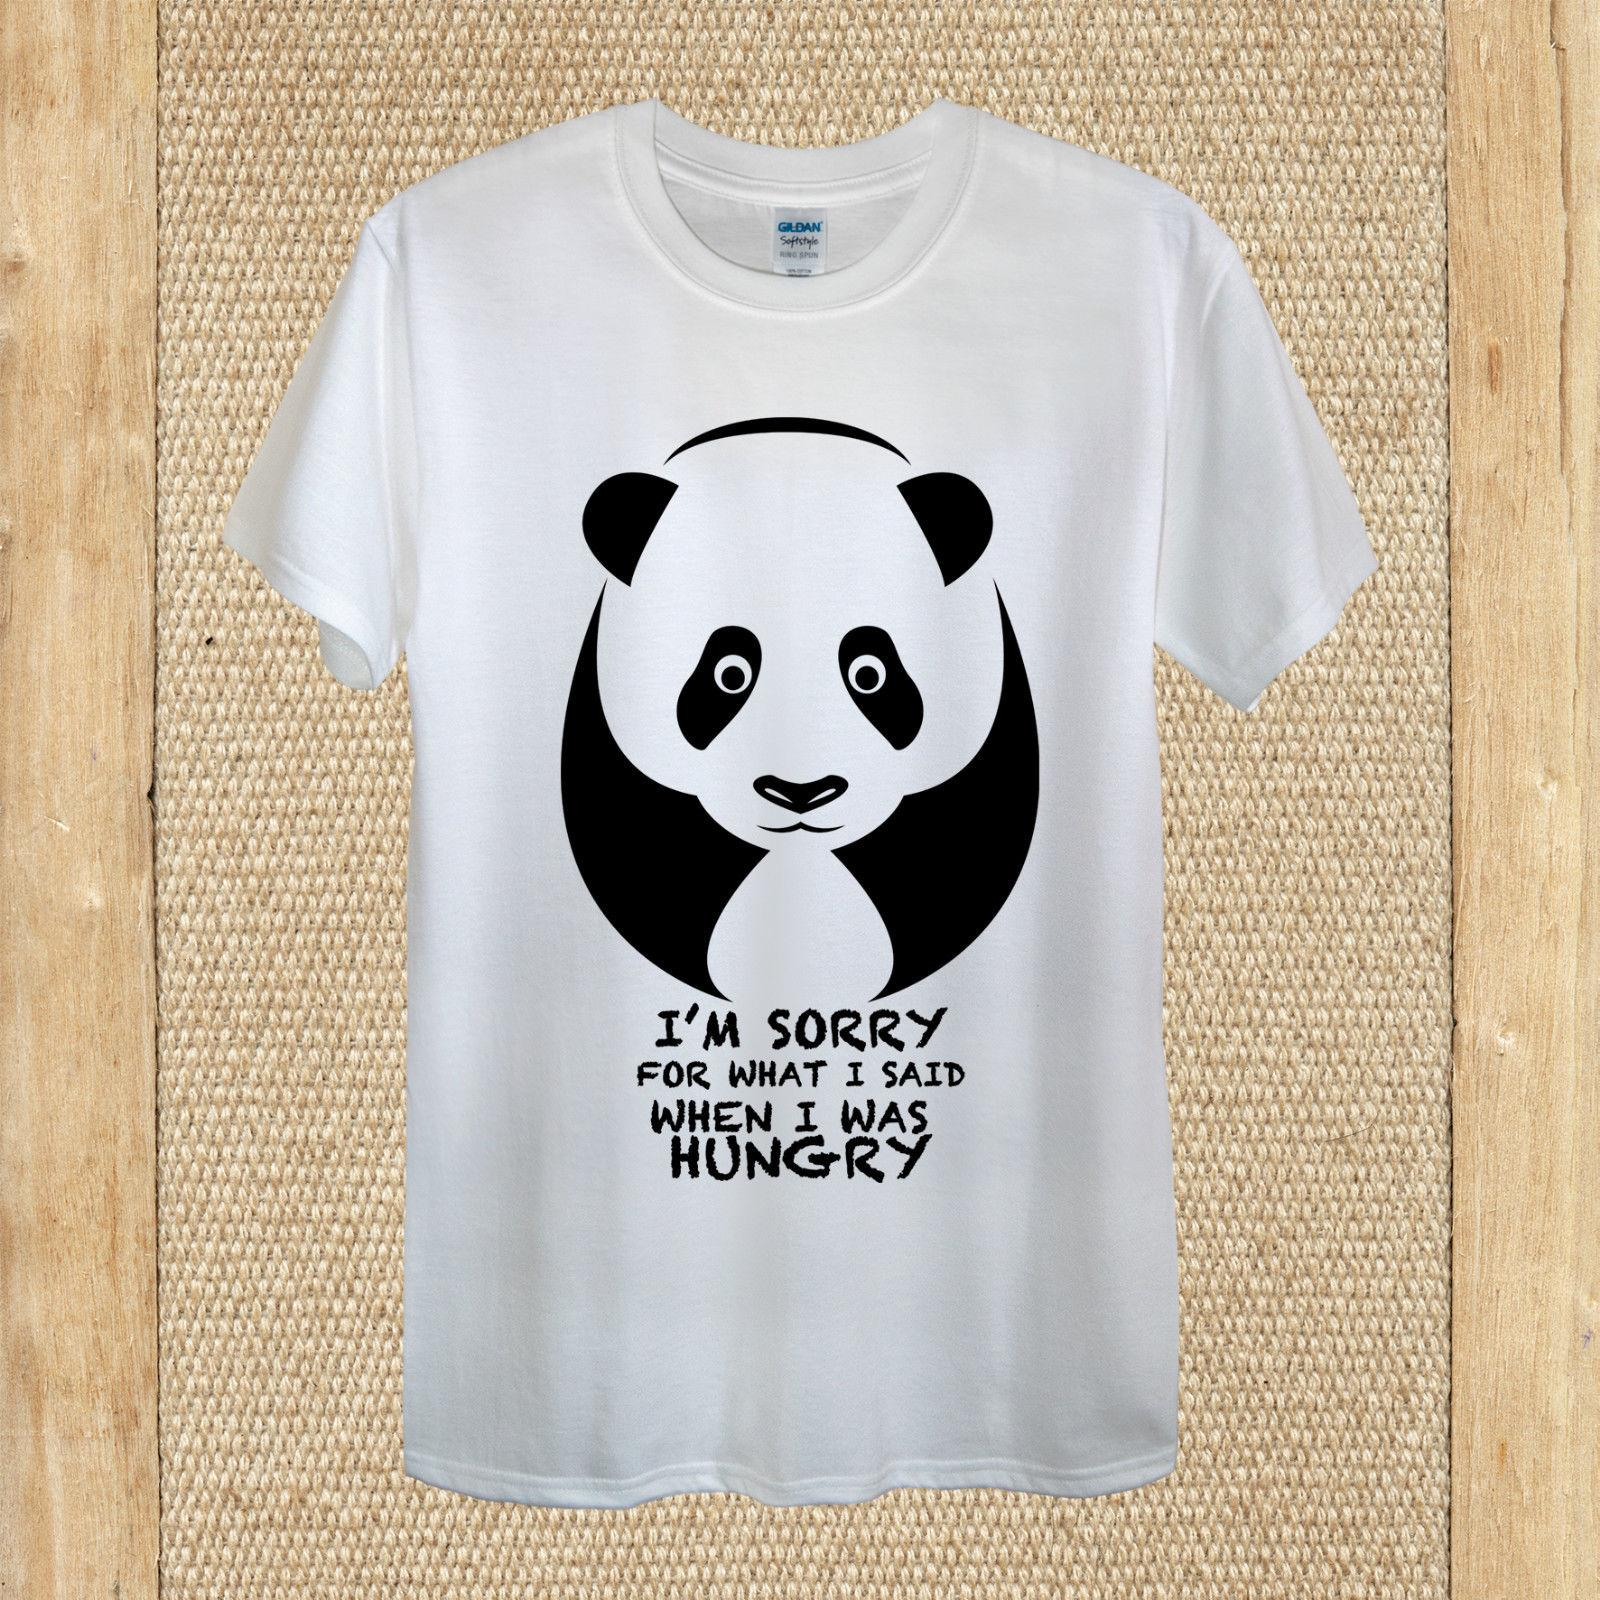 b001e01e2fd7 Hungry Panda funny 'I'm sorry for what I said' T-shirt 100% Cotton men women